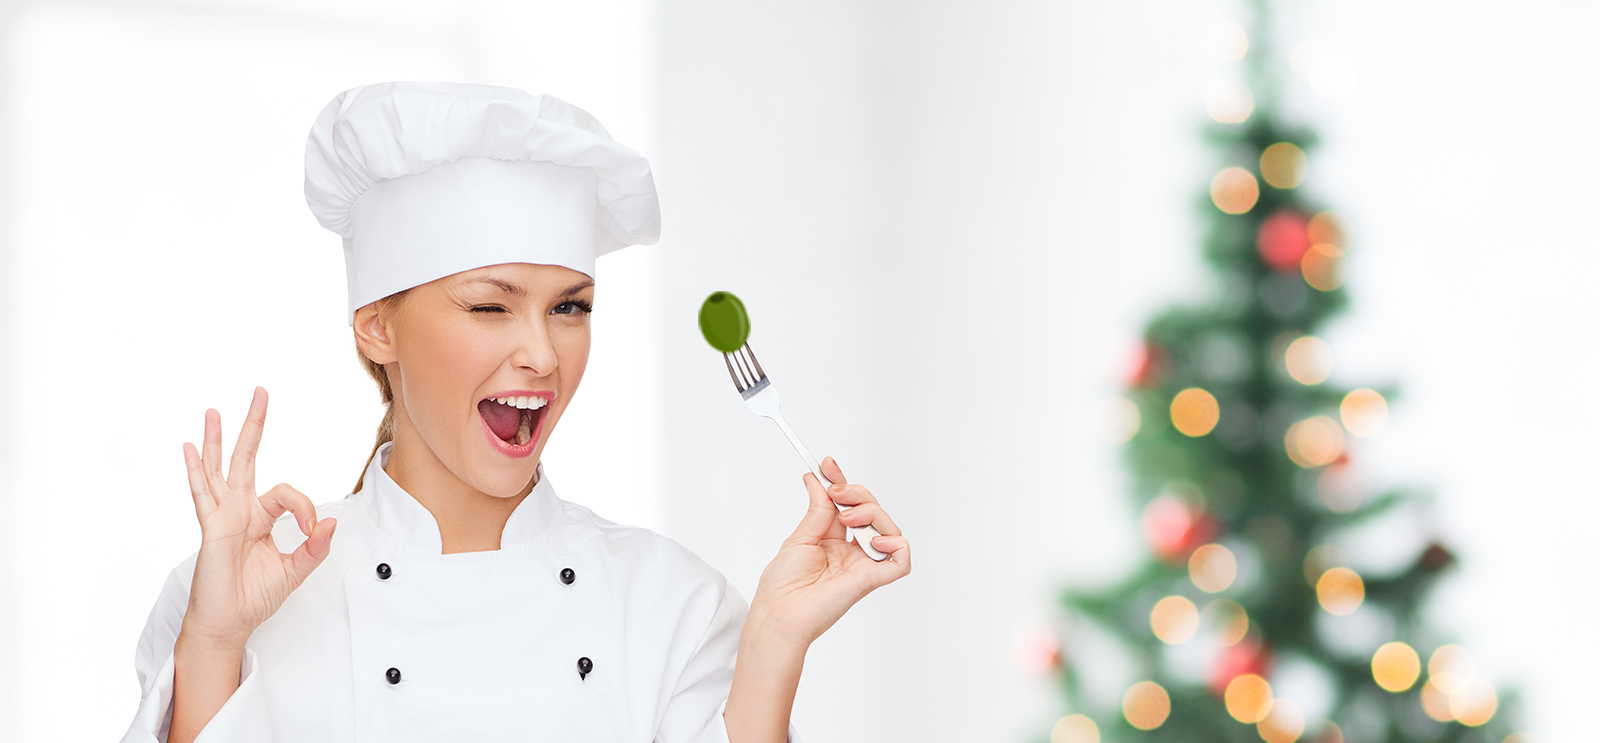 Aspiring Chefs Competition Header Image